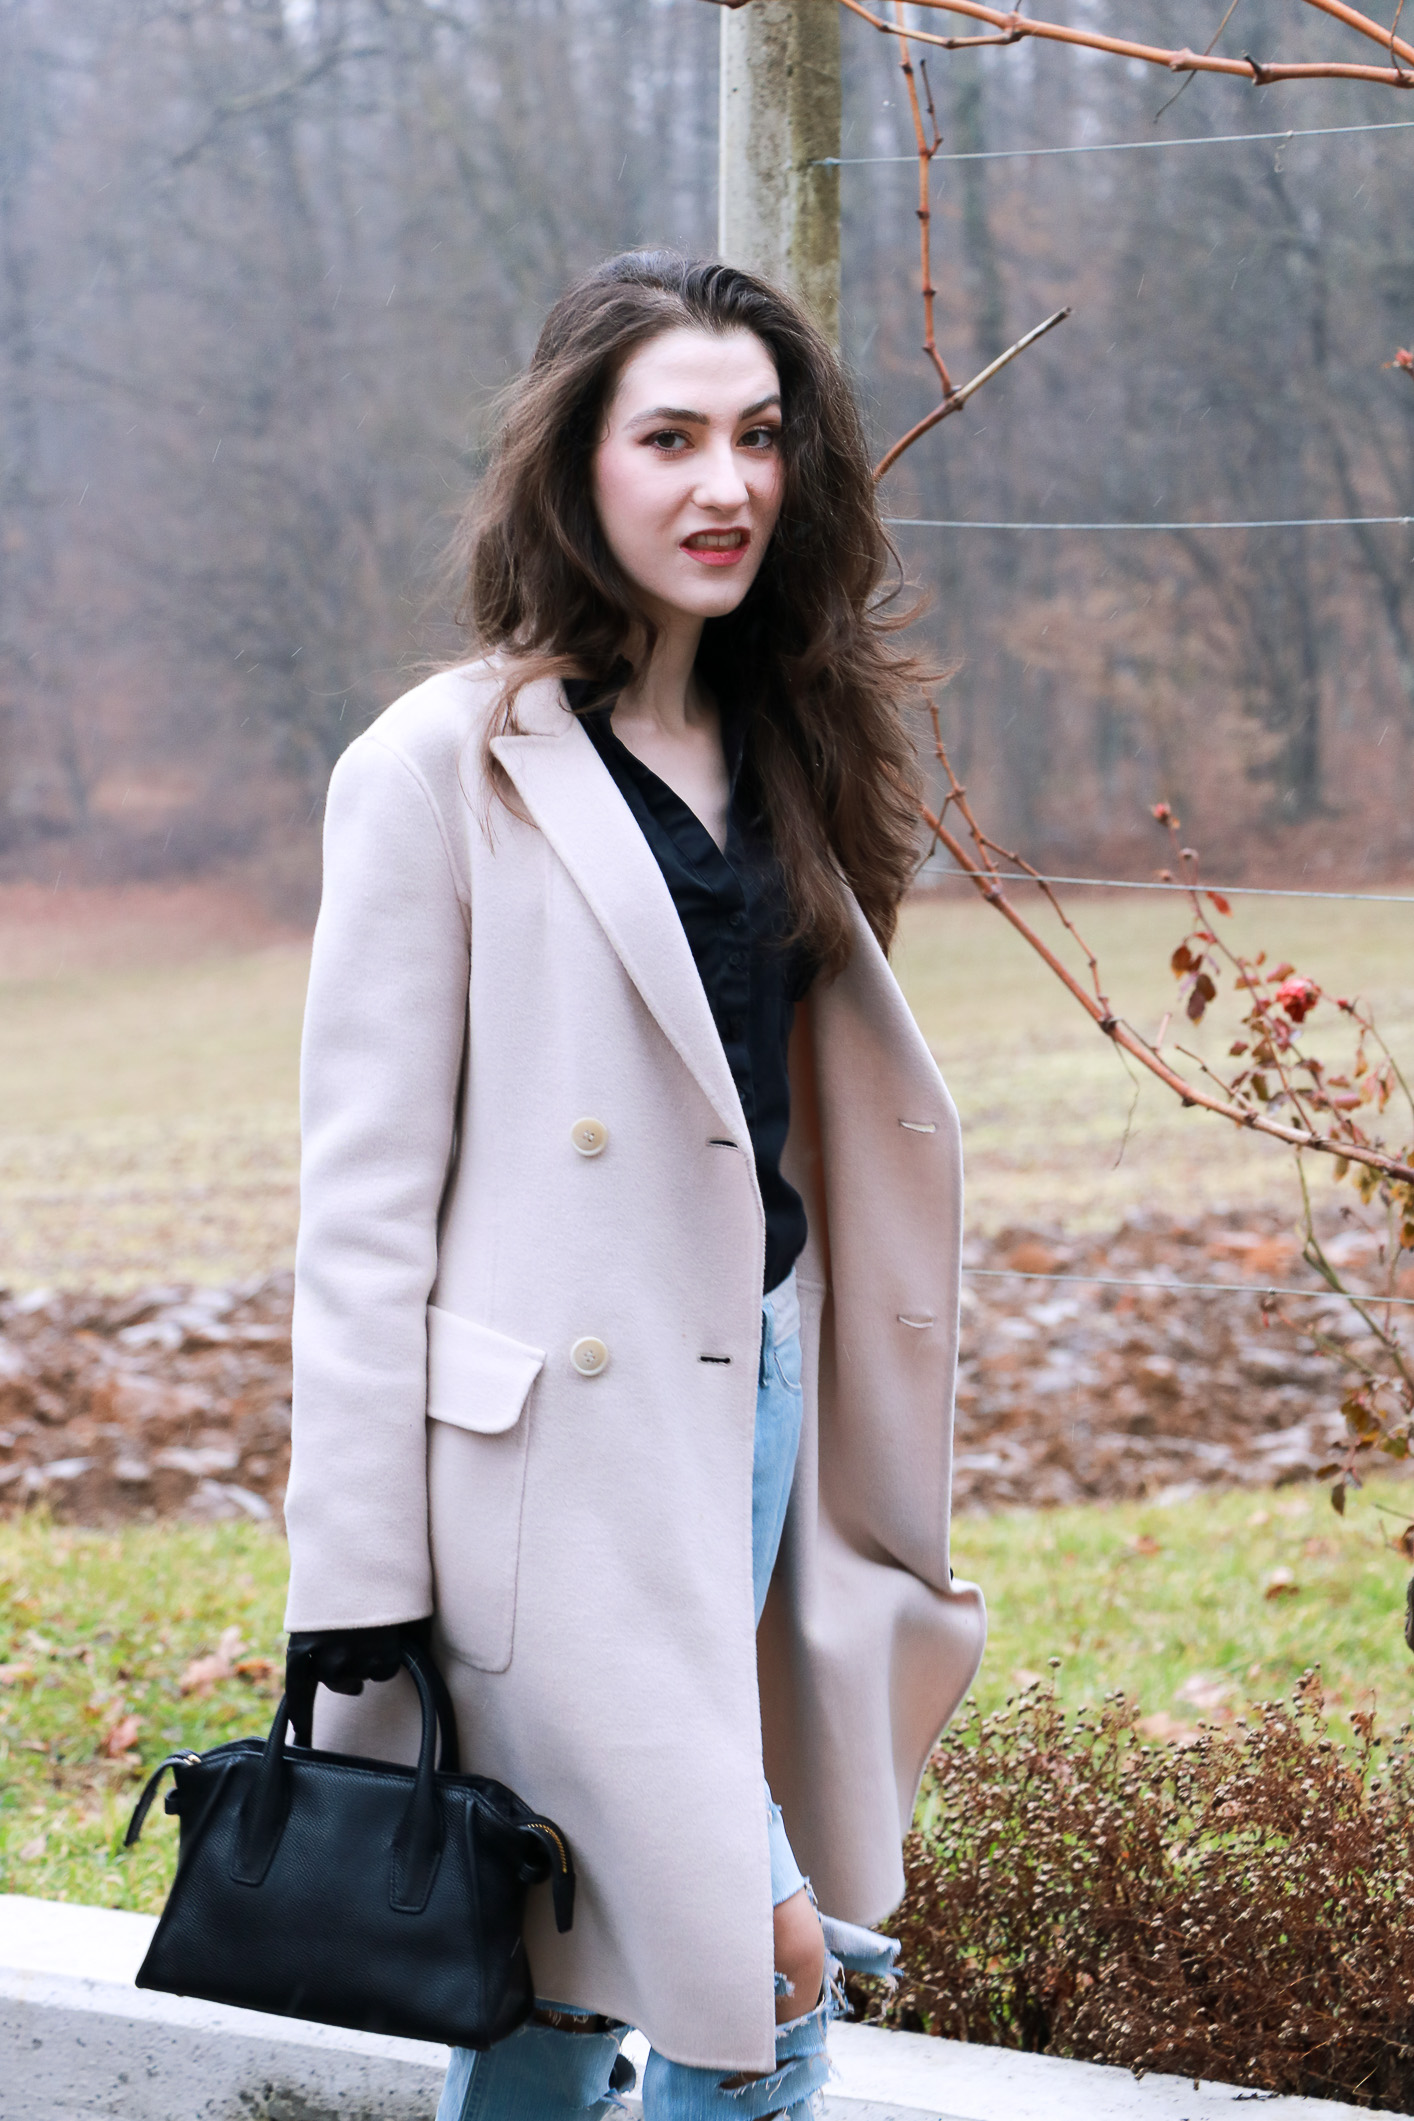 Fashion blogger Veronika Lipar of Brunette From Wall Street sharing what to wear this Friday